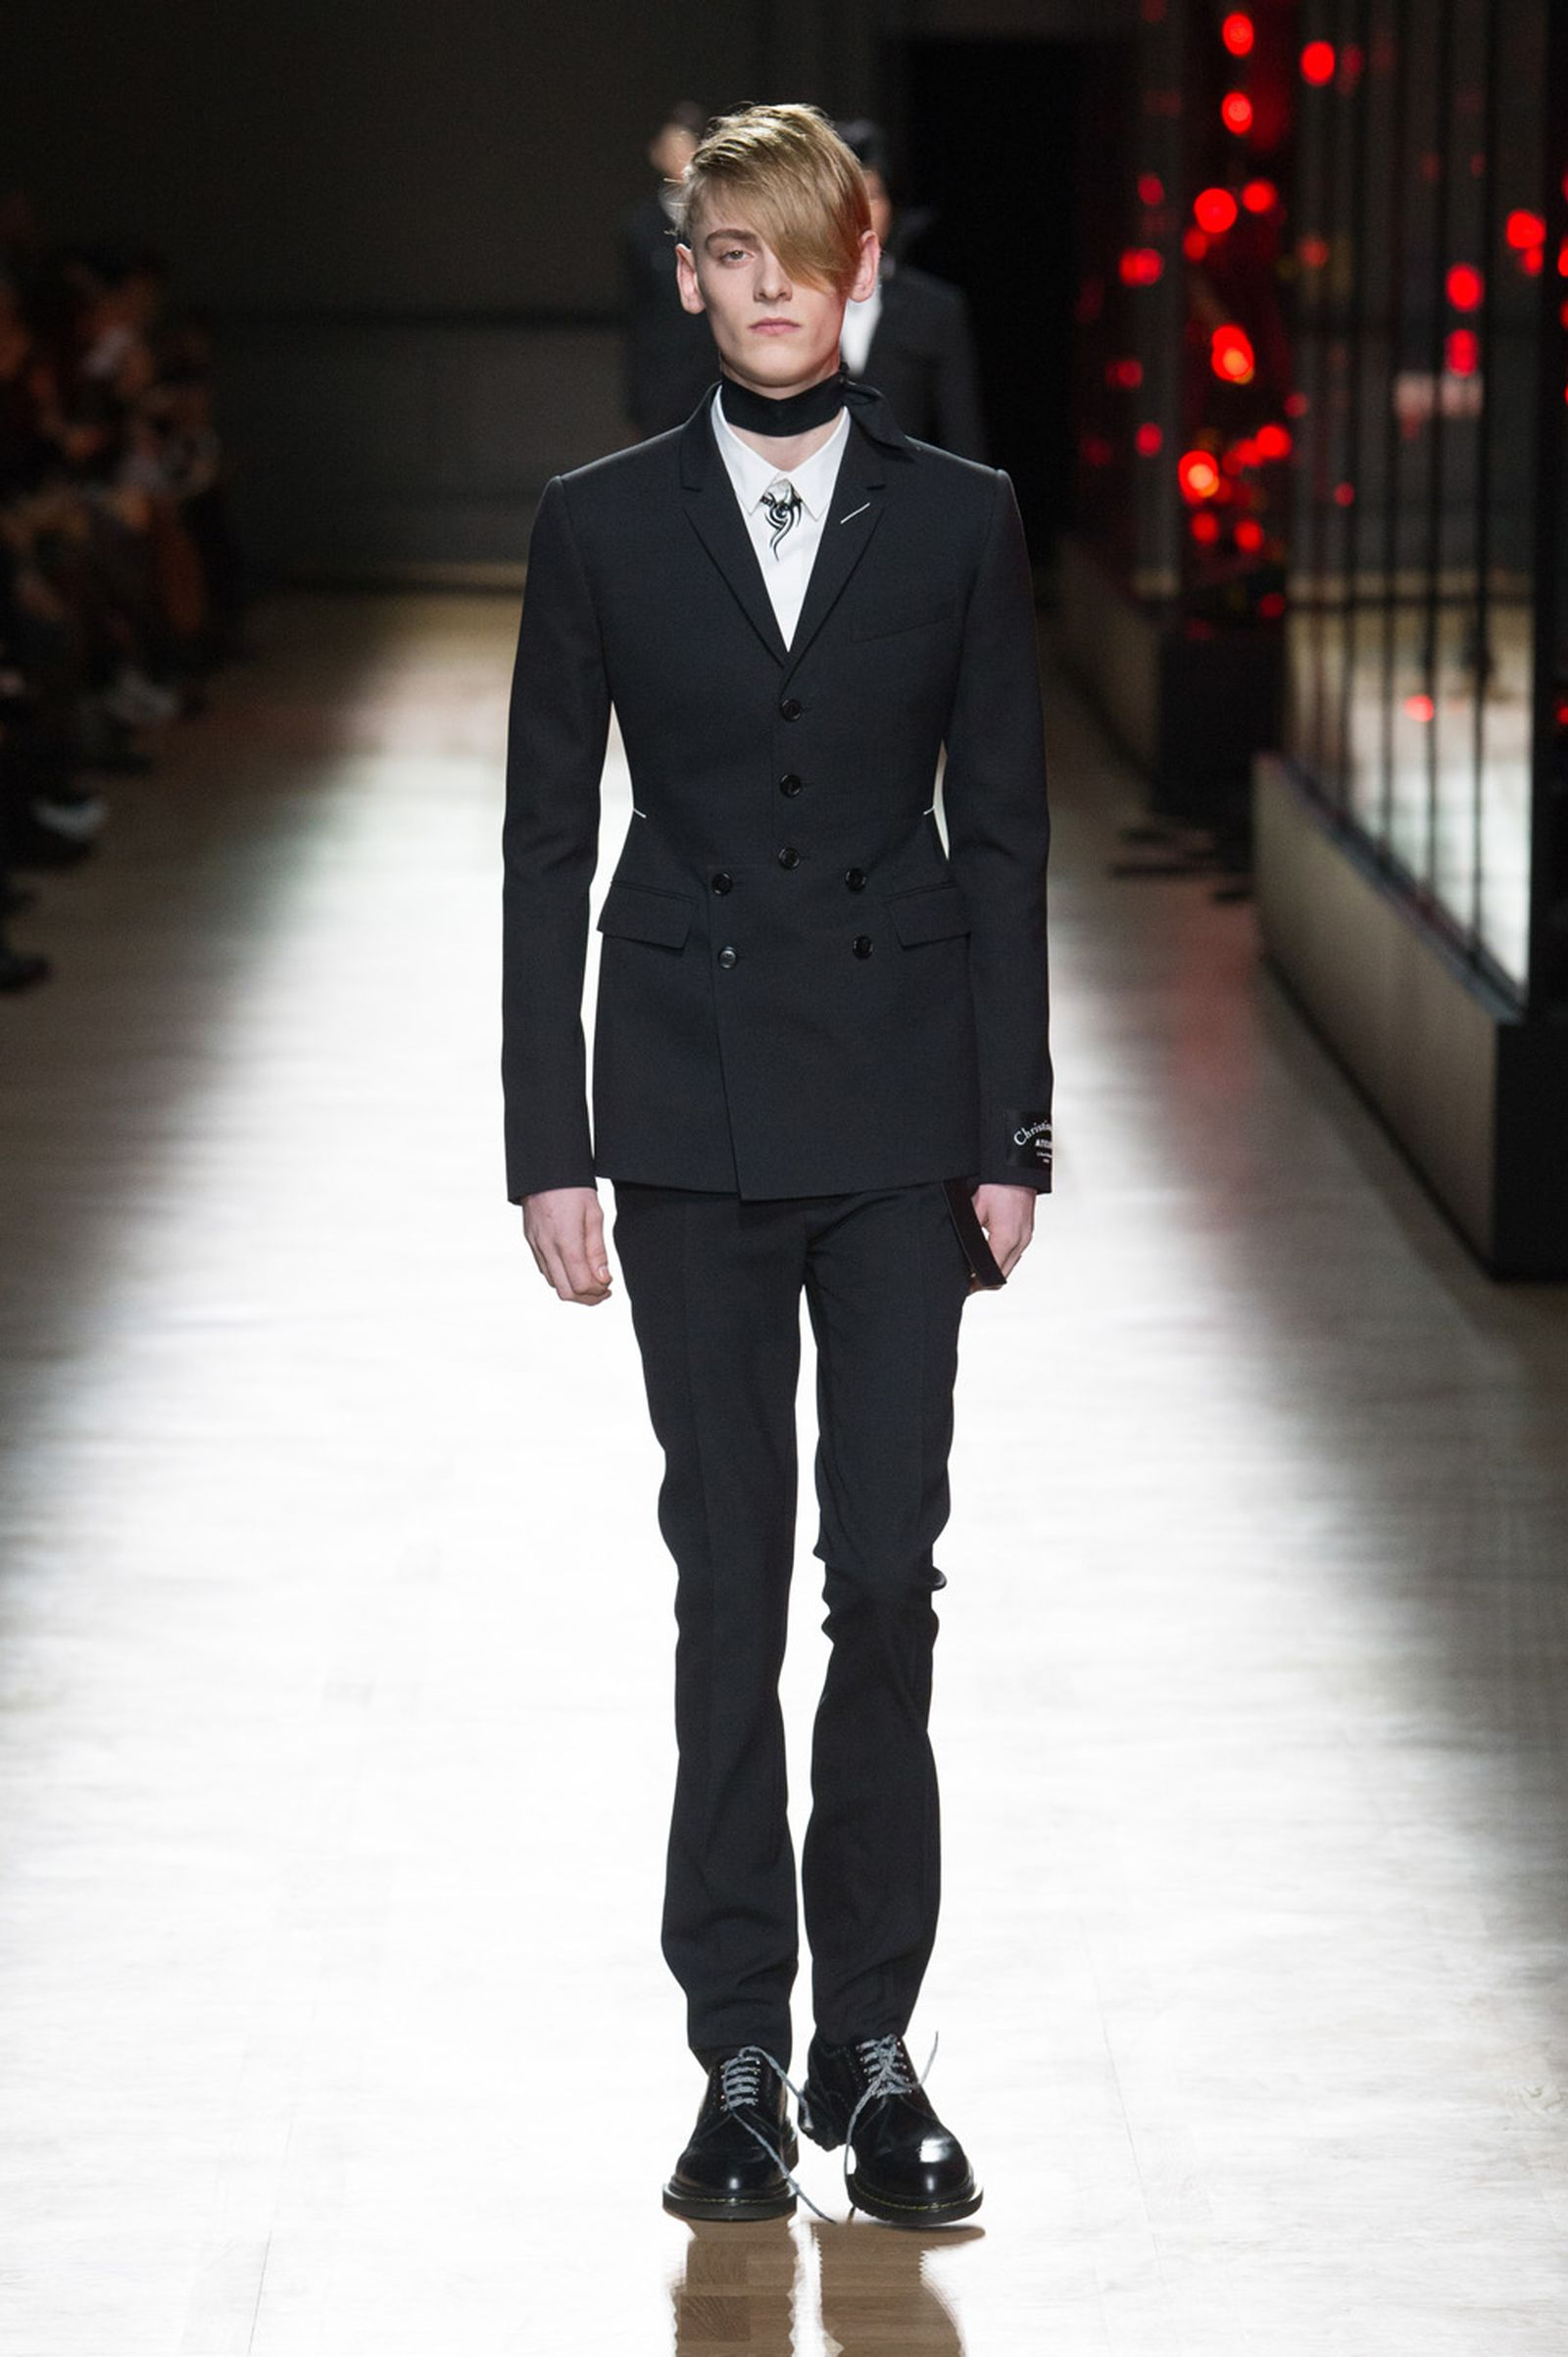 DIOR HOMME WINTER 18 19 BY PATRICE STABLE look02 Fall/WInter 2018 runway